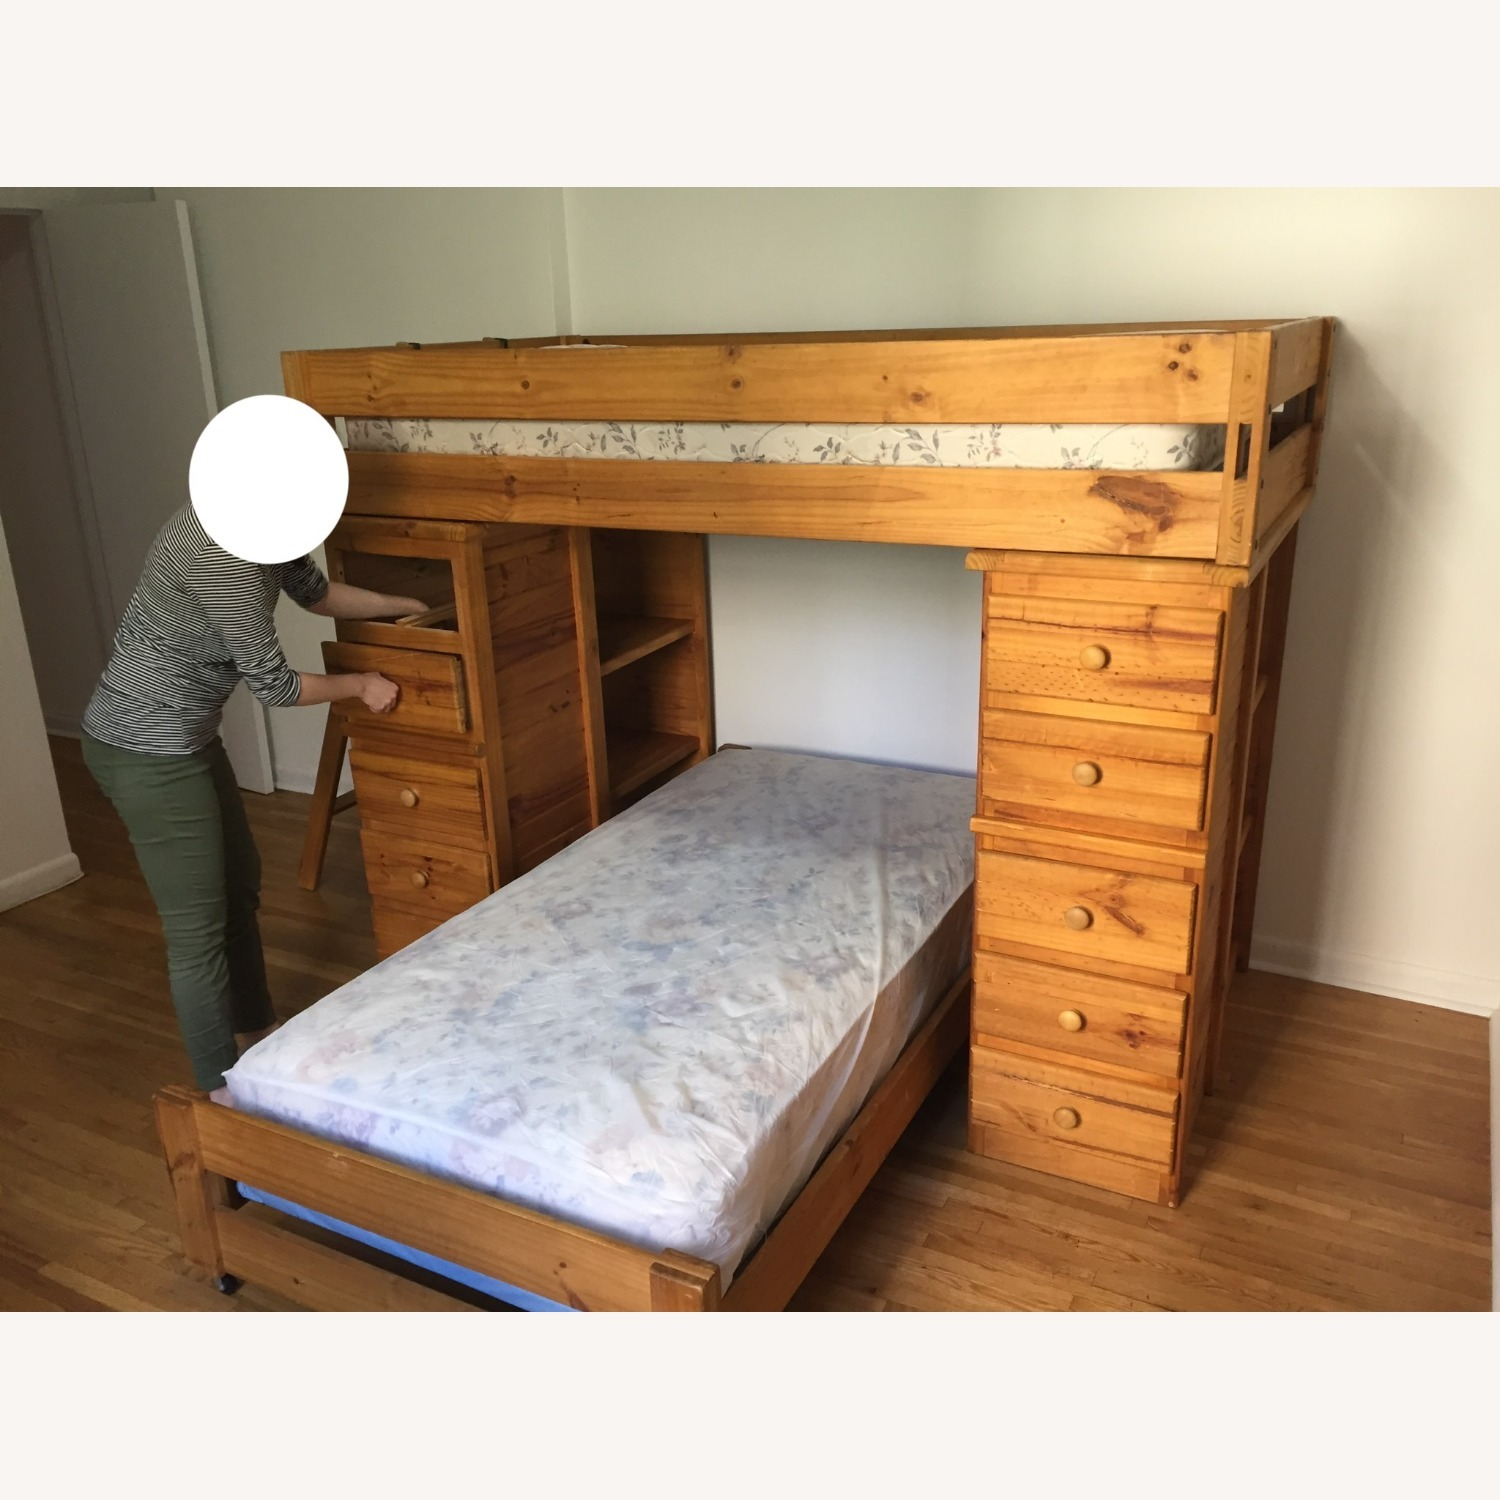 T Twin Bunk Beds - w Dresser Drawers Bookshelves - image-1